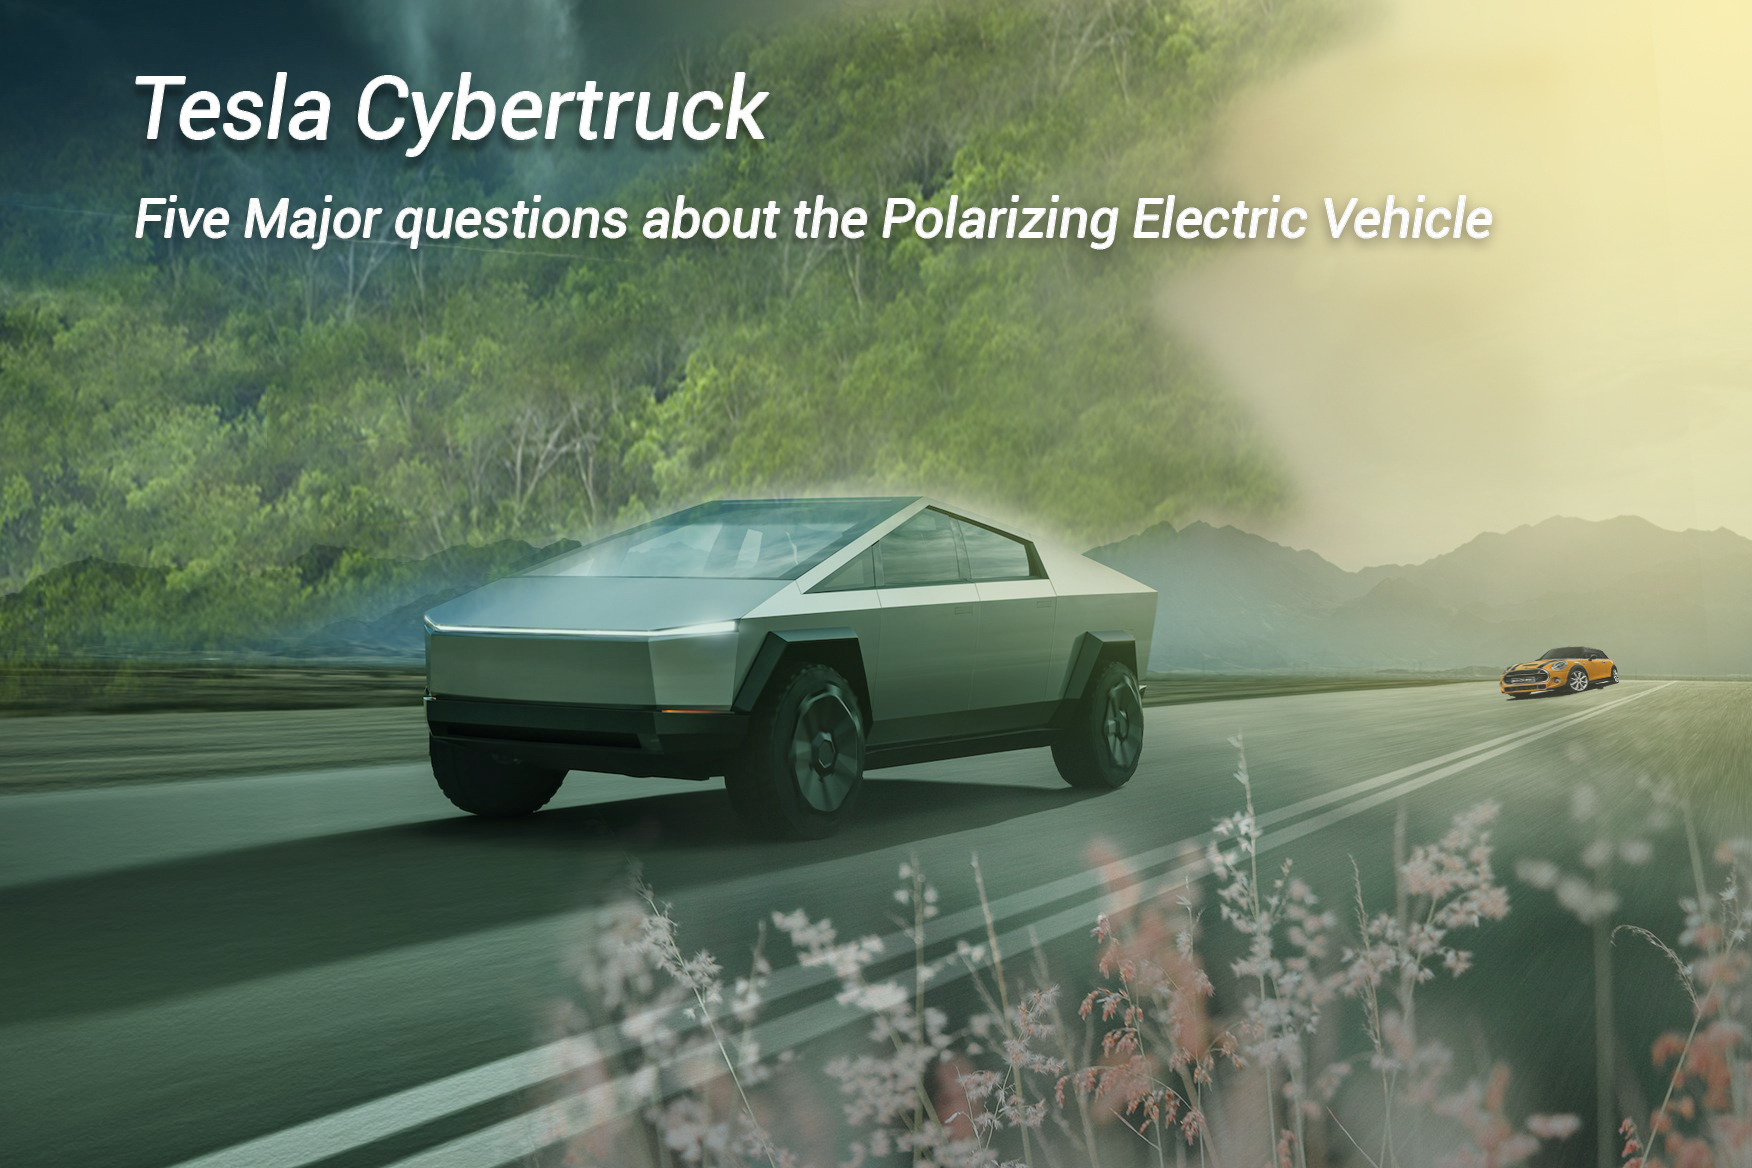 Five Major questions about the Polarizing Electric Vehicle